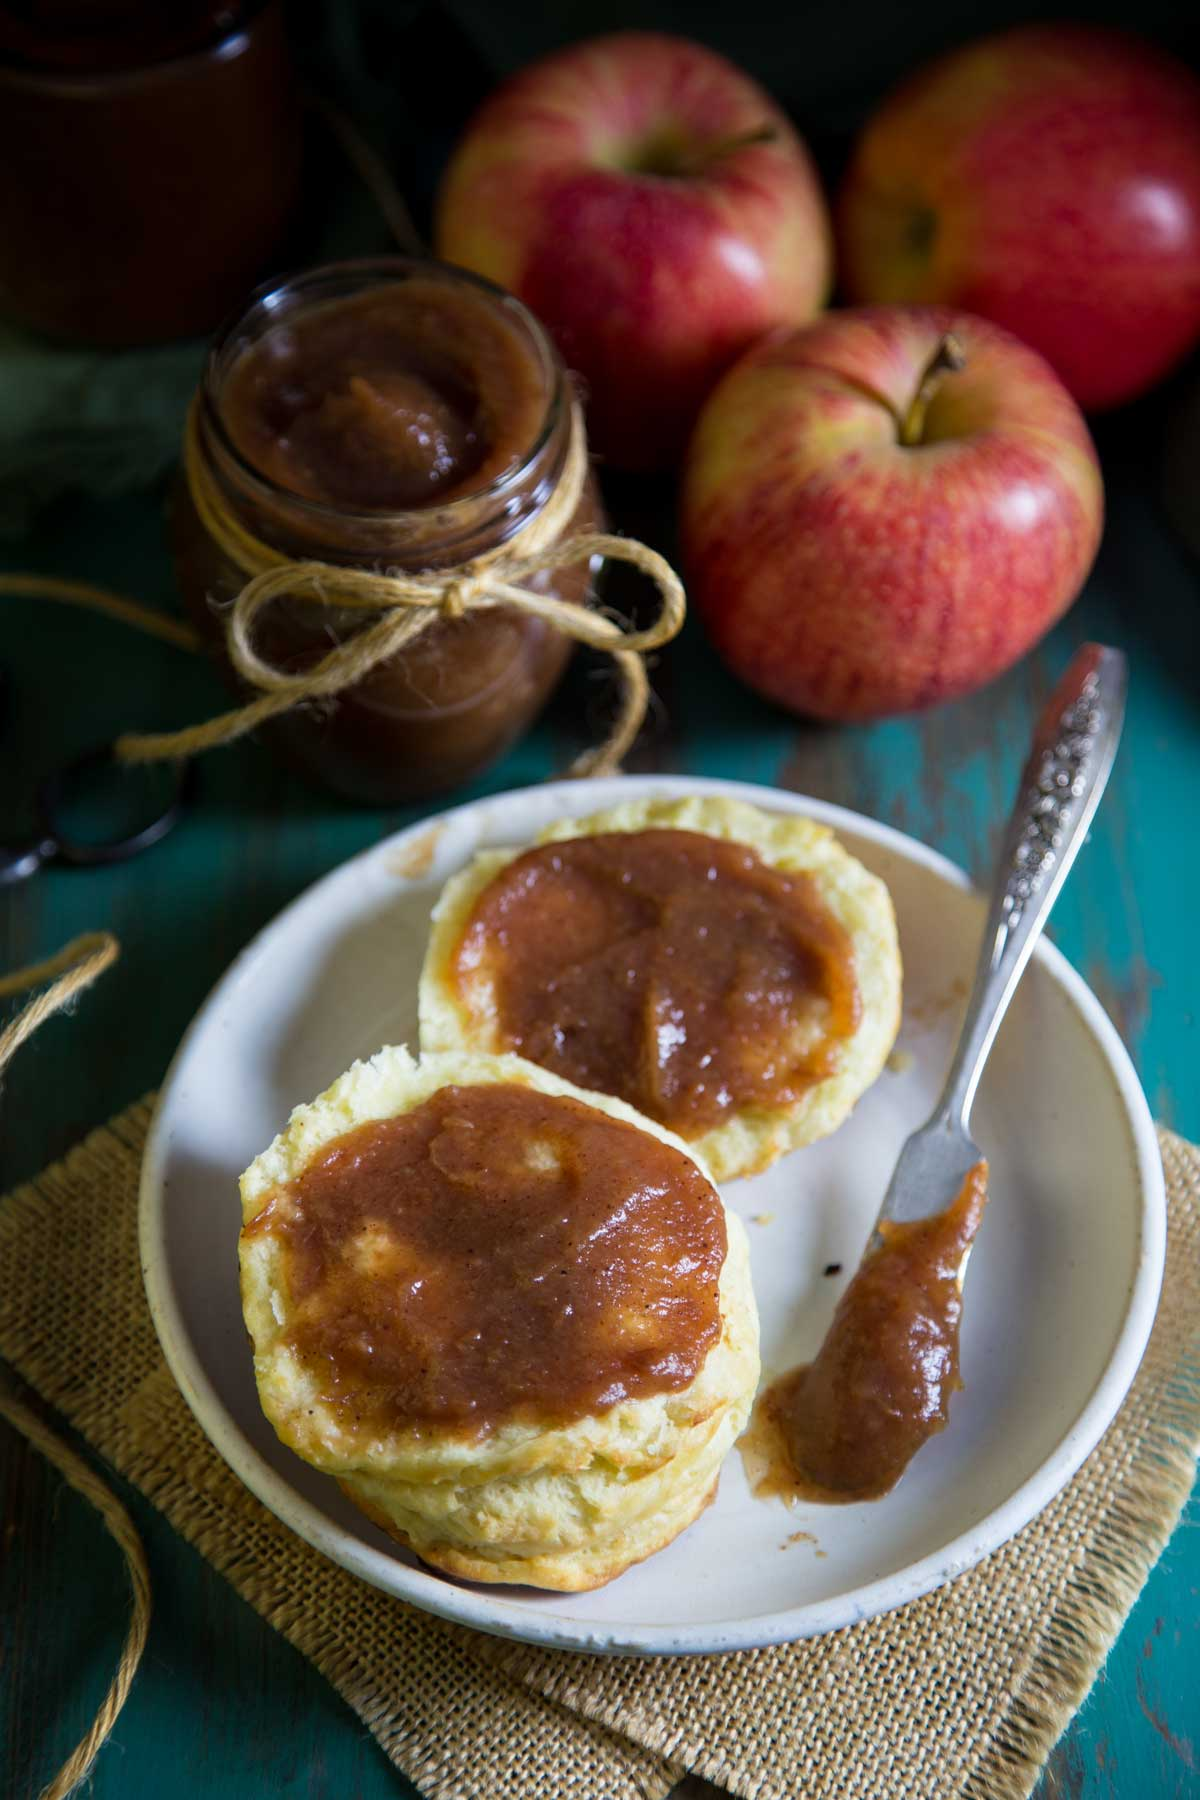 Apple butter spread on a biscuit